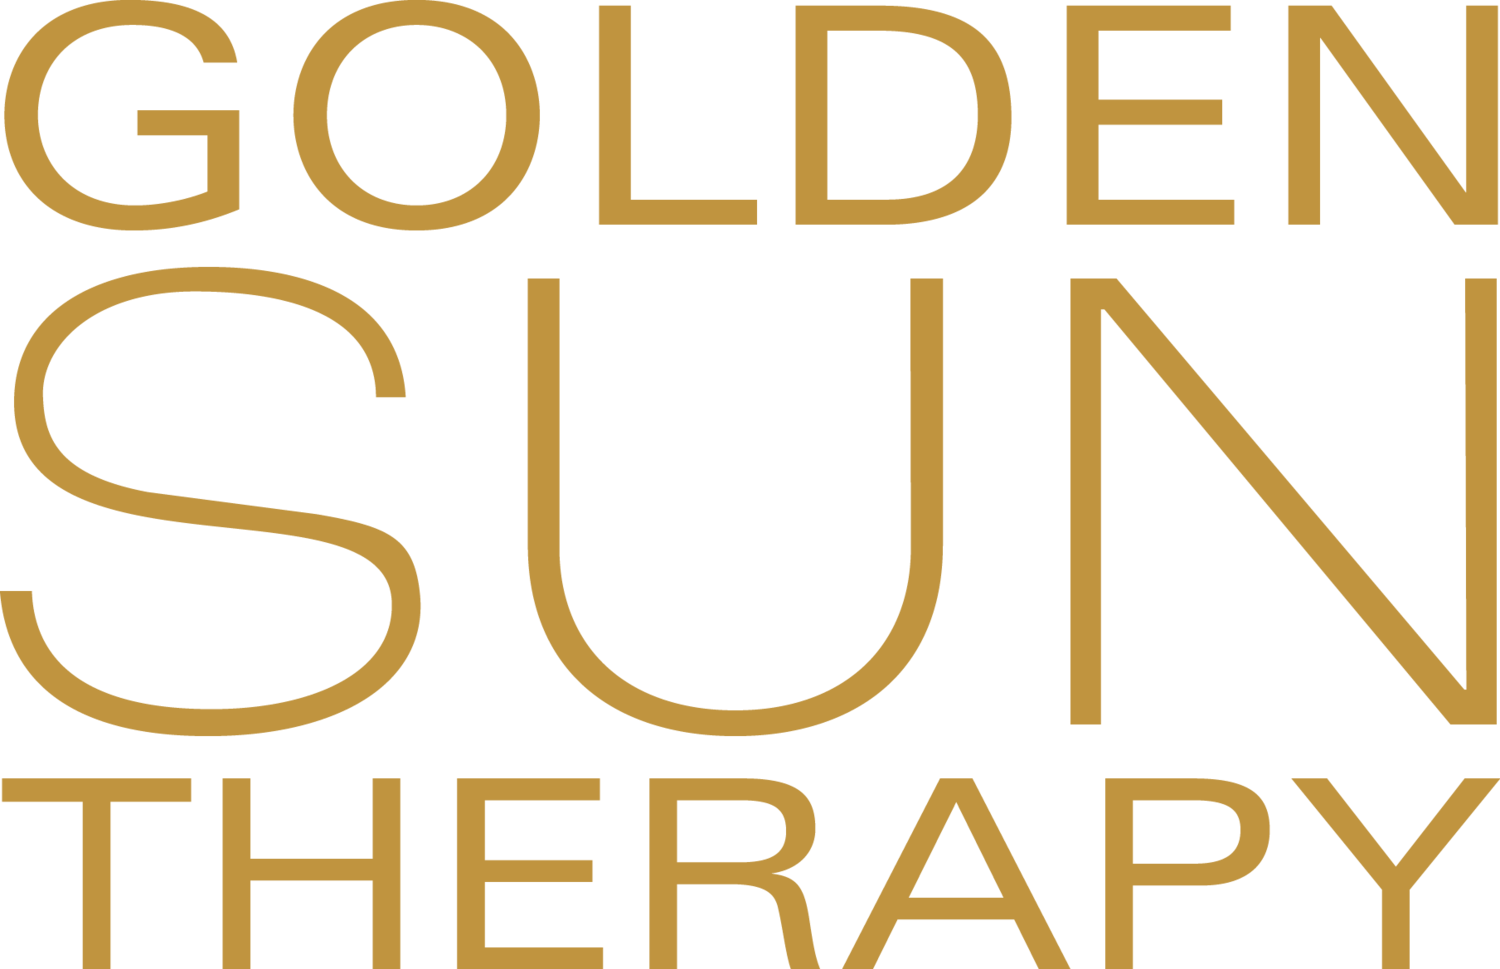 Golden Sun Therapy